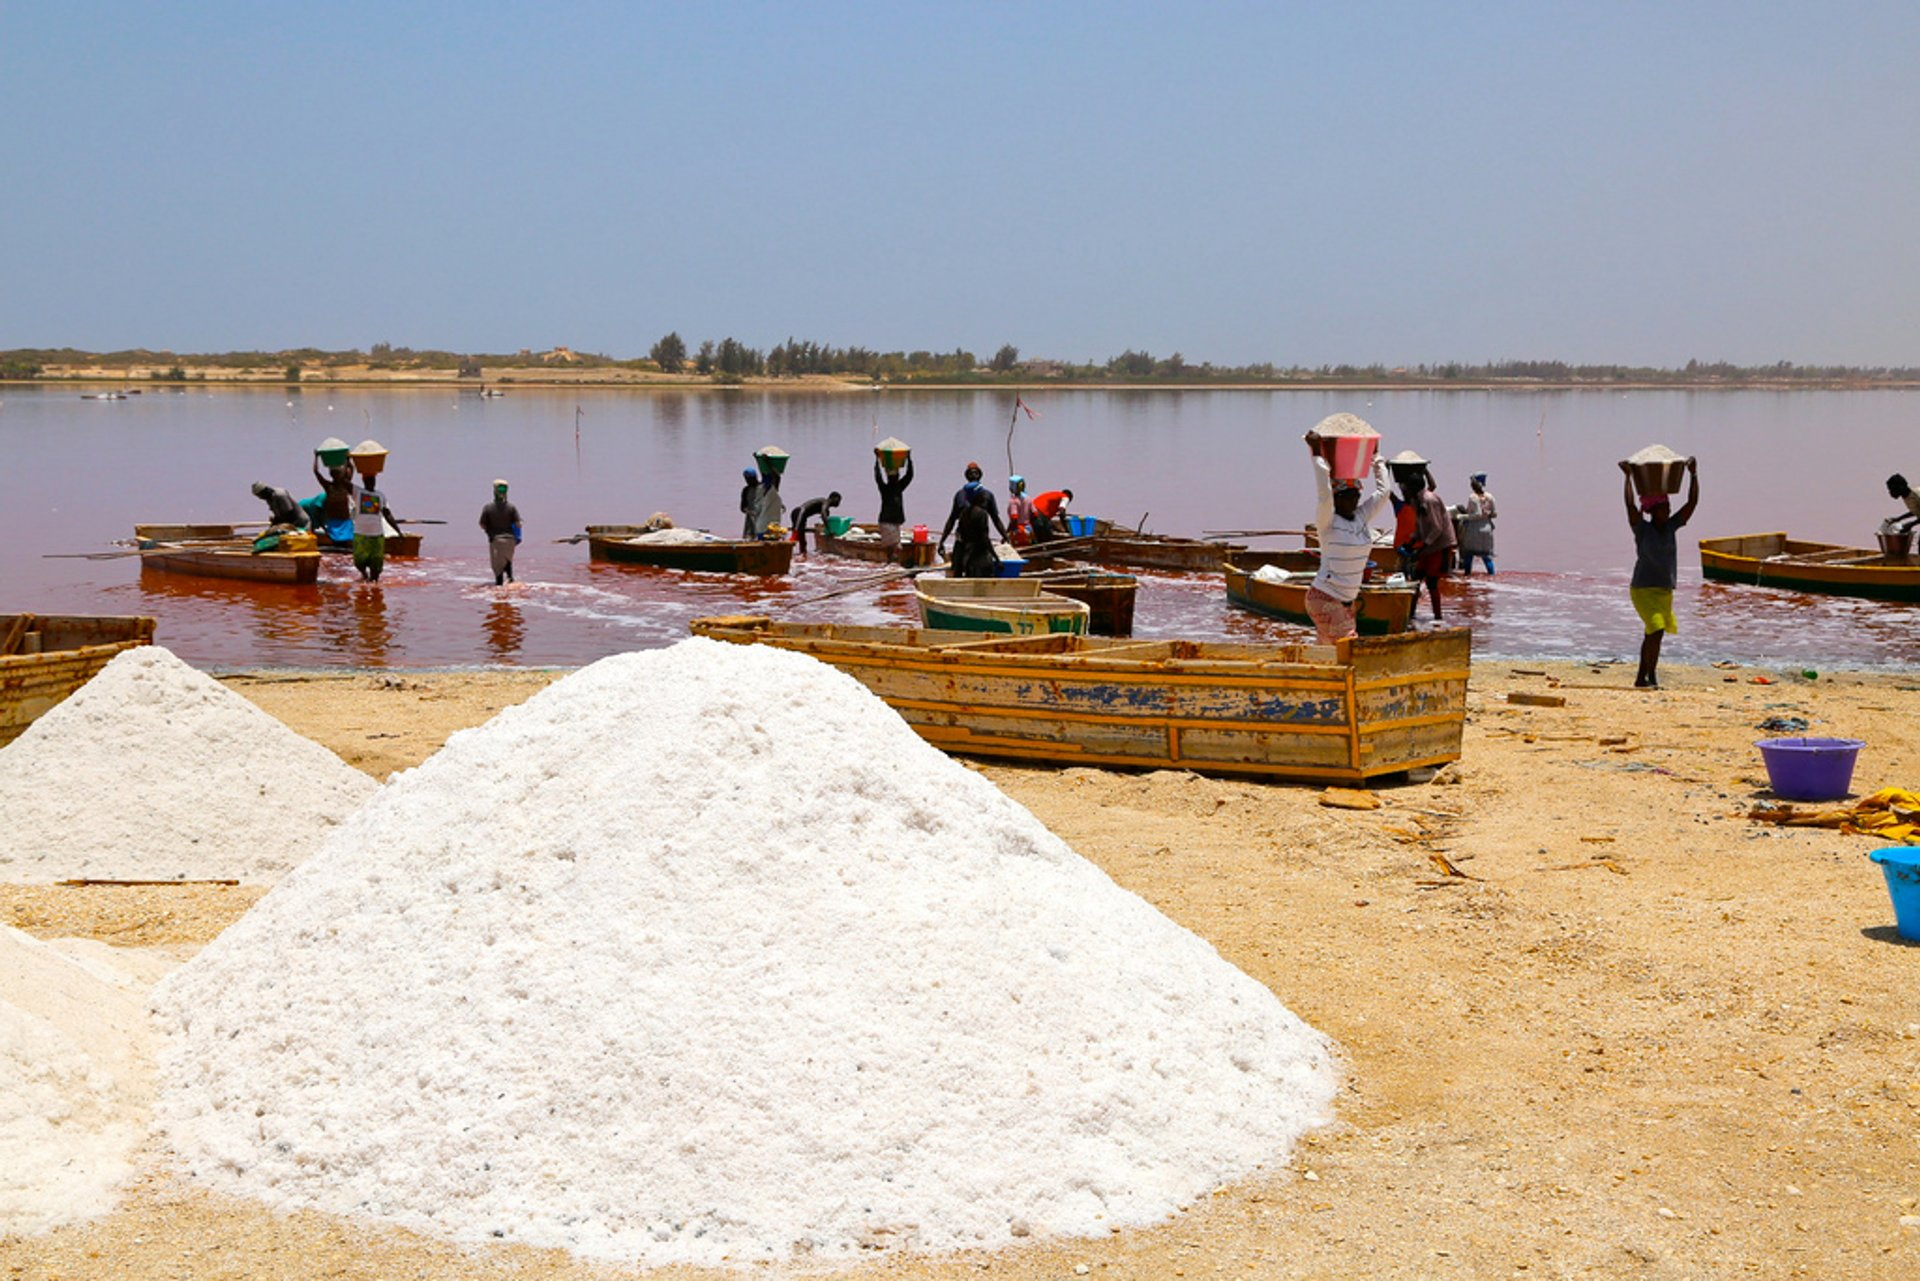 Salt harvesting at Lake Retba 2020